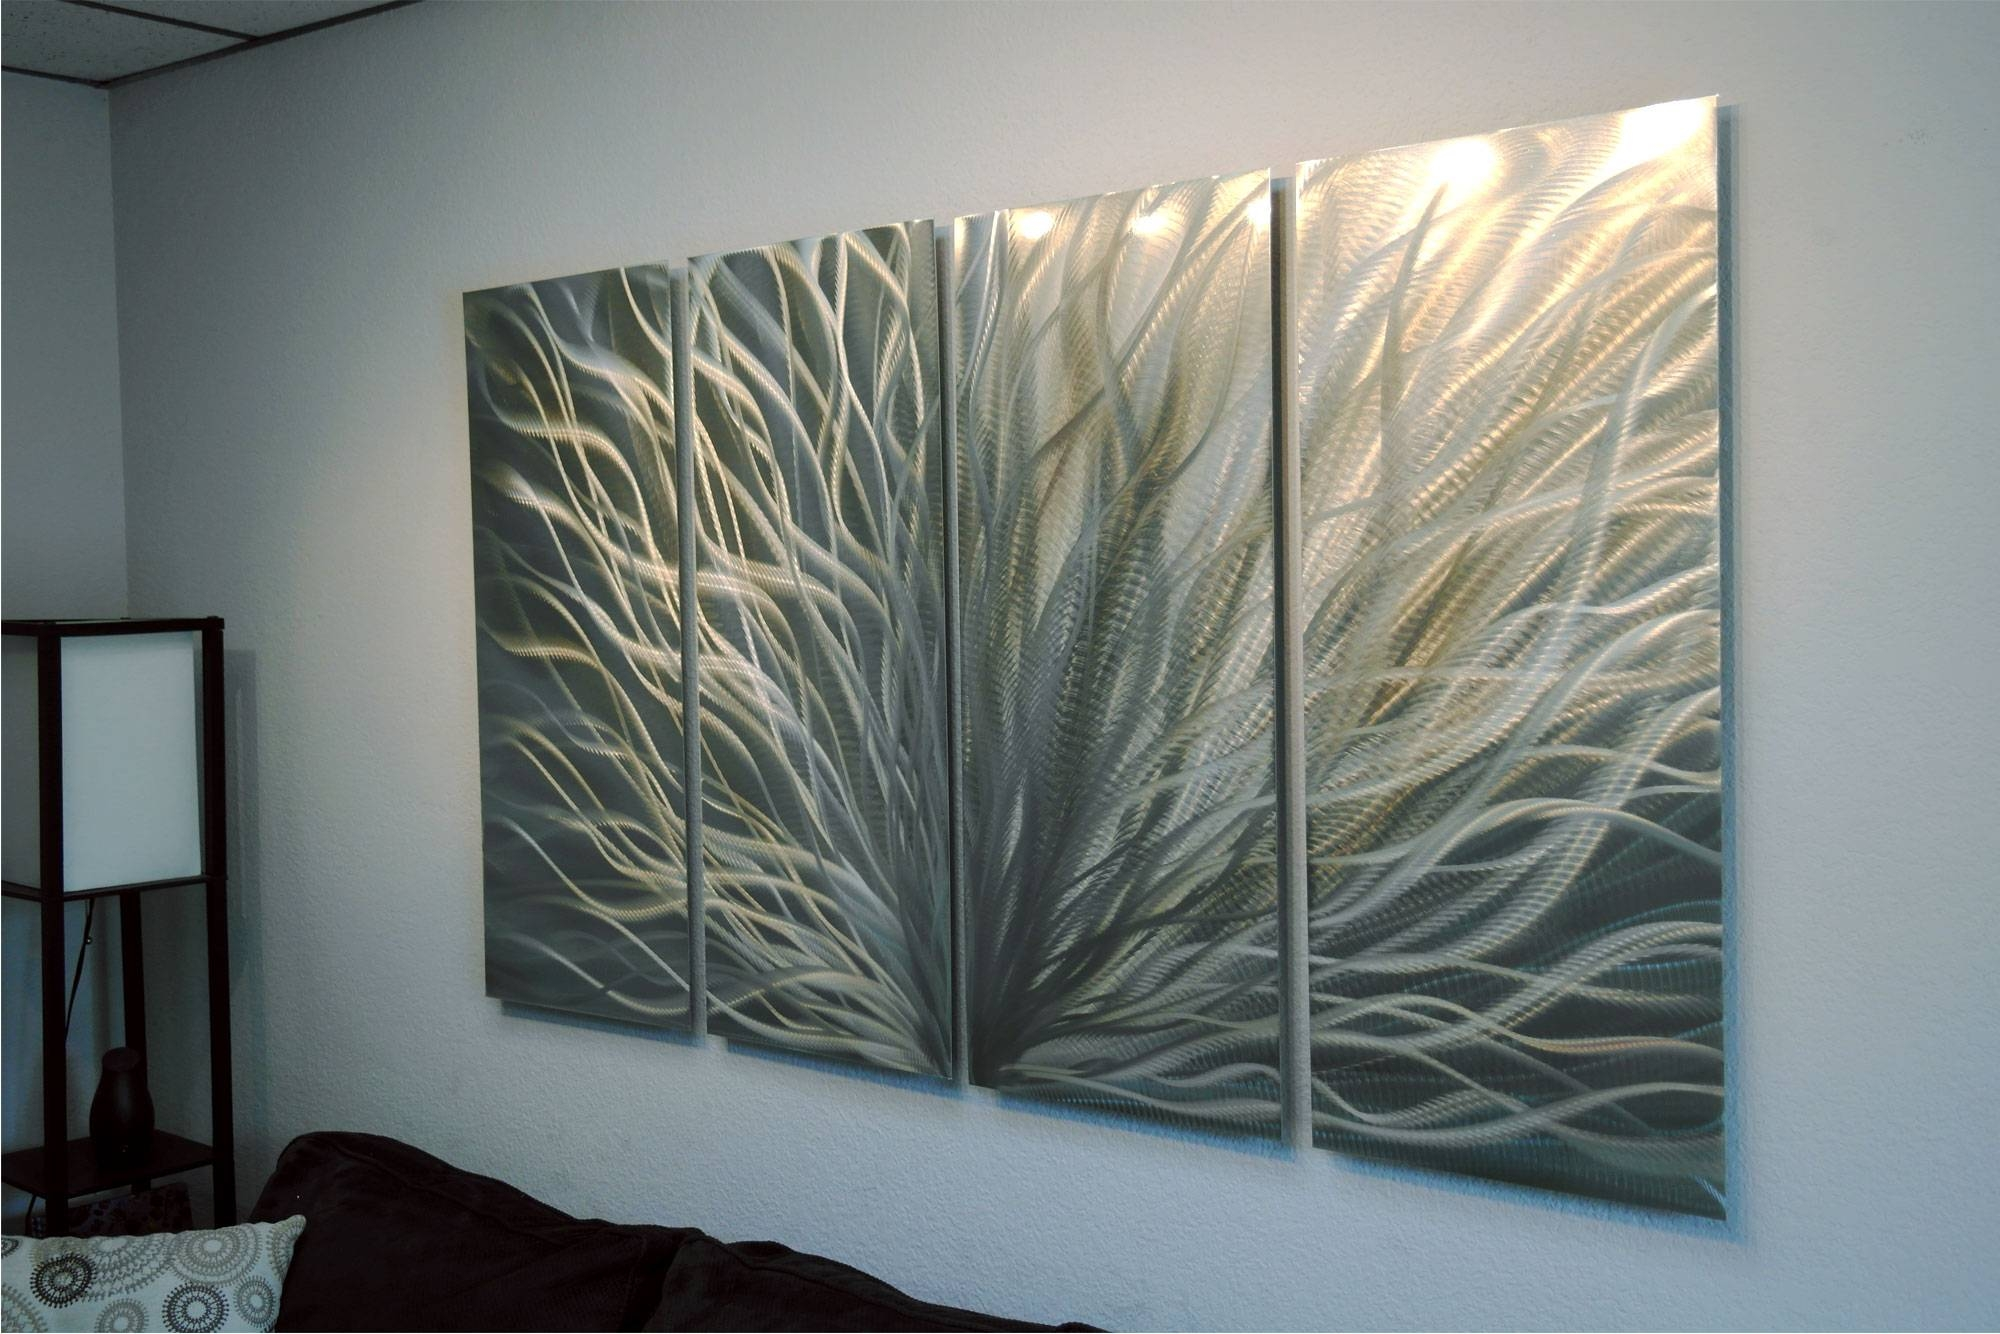 Radiance Silver And Gold 36X63 – Abstract Metal Wall Art In Most Up To Date Silver And Gold Wall Art (View 15 of 15)